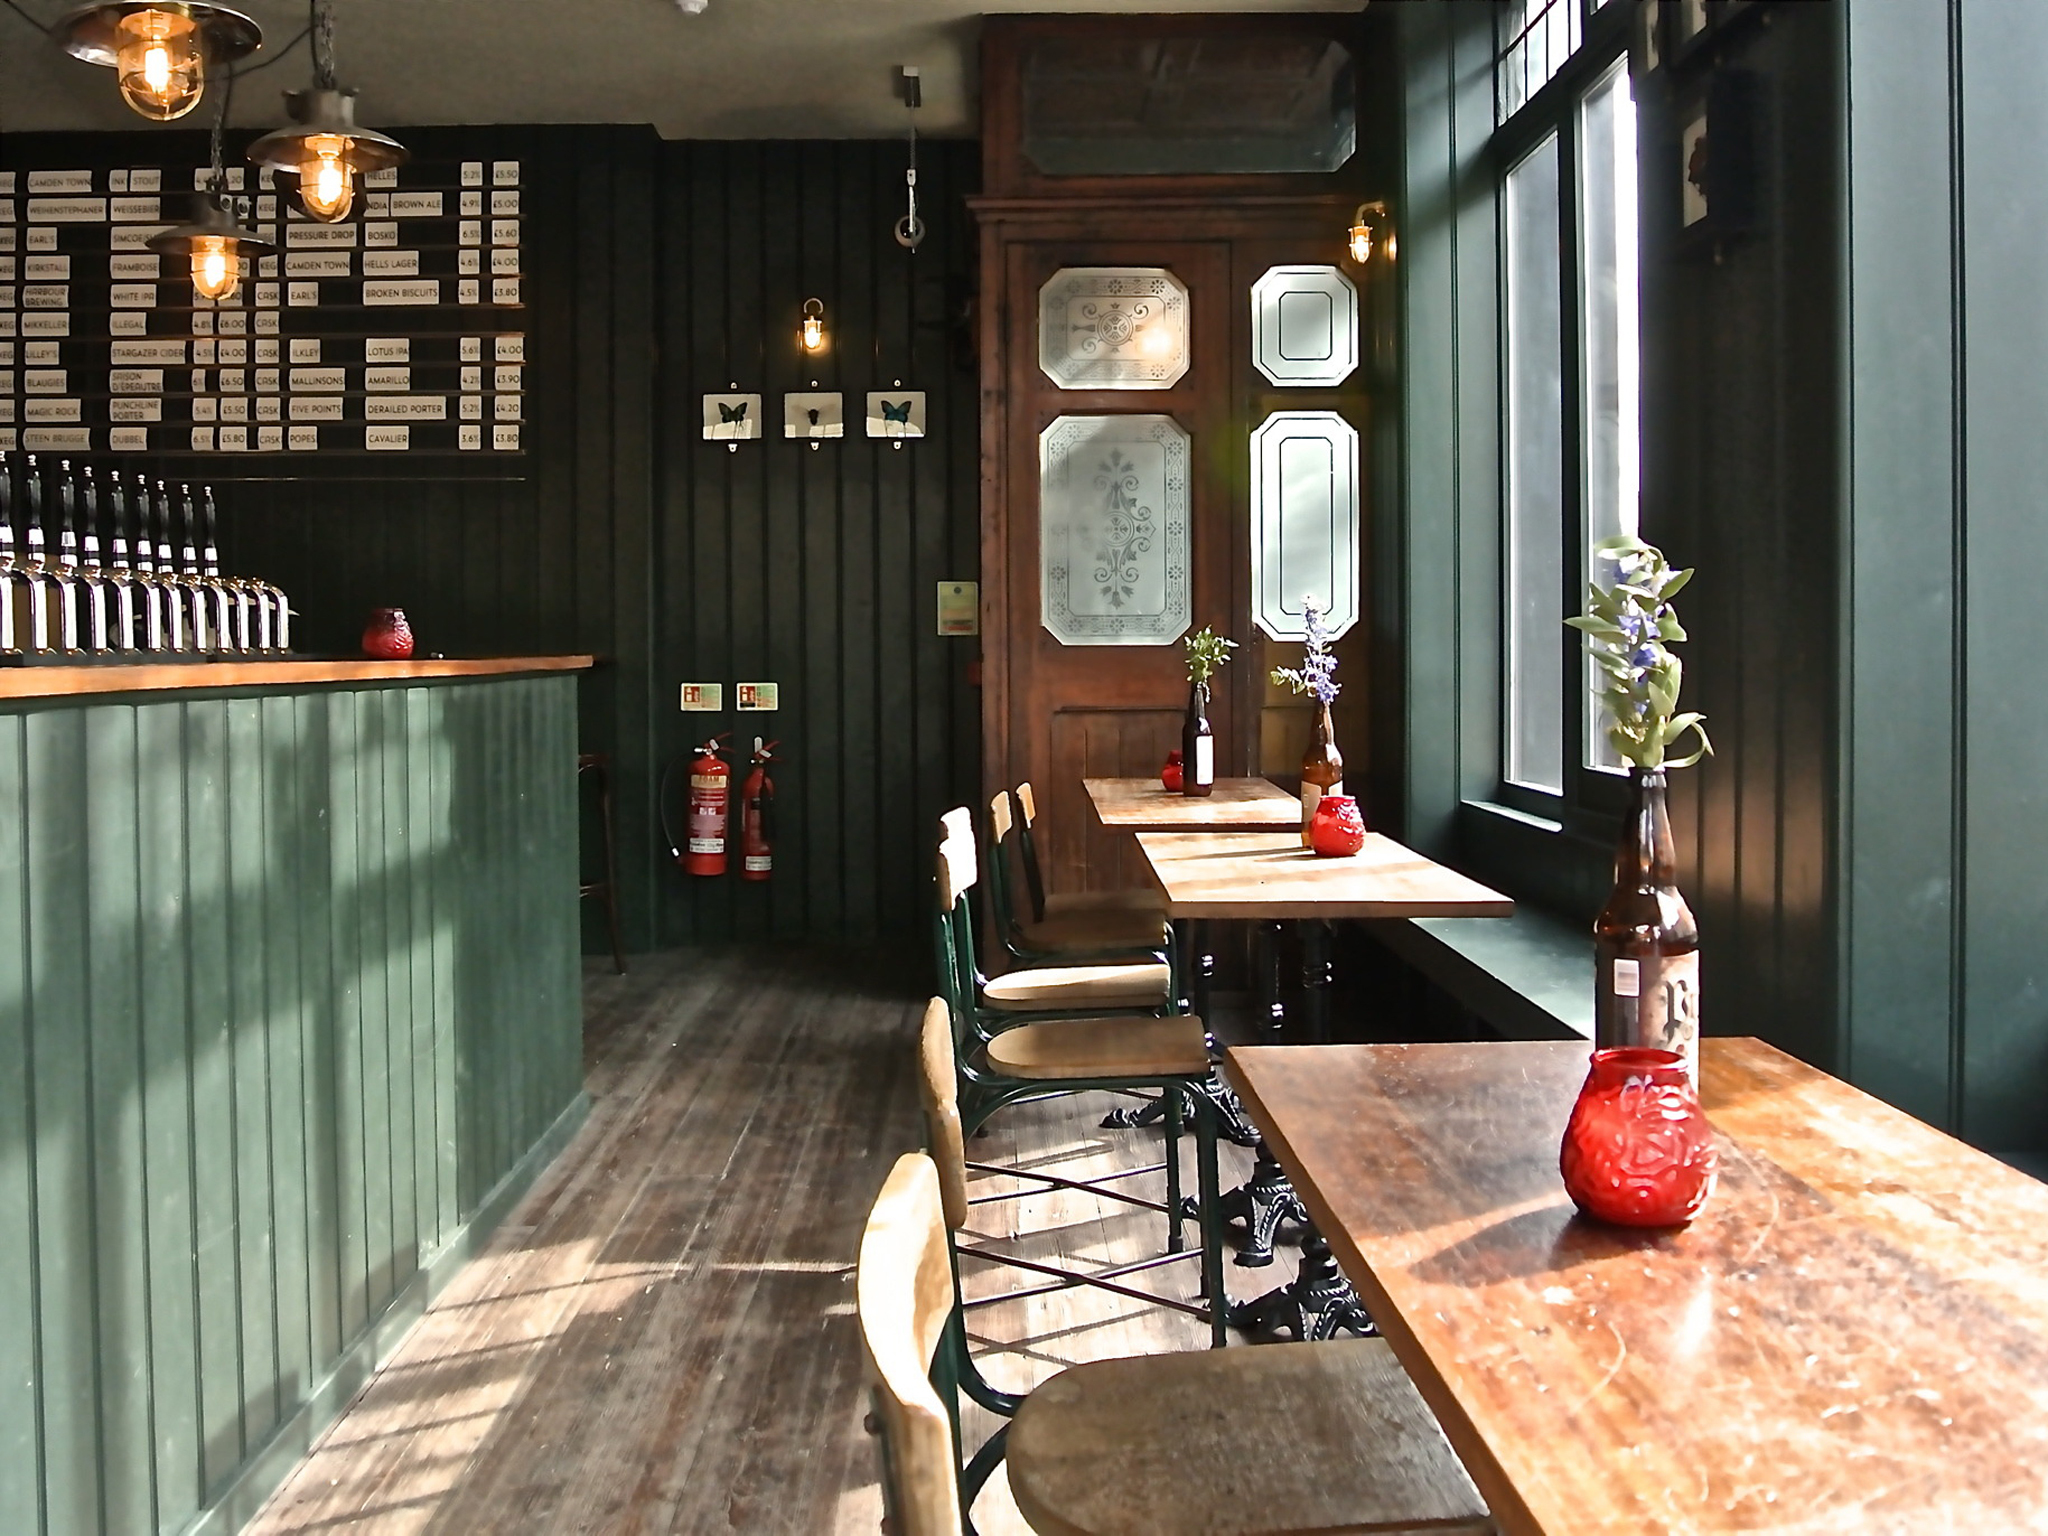 The 100 best bars and pubs in London - King's Arms, Bethnal Green